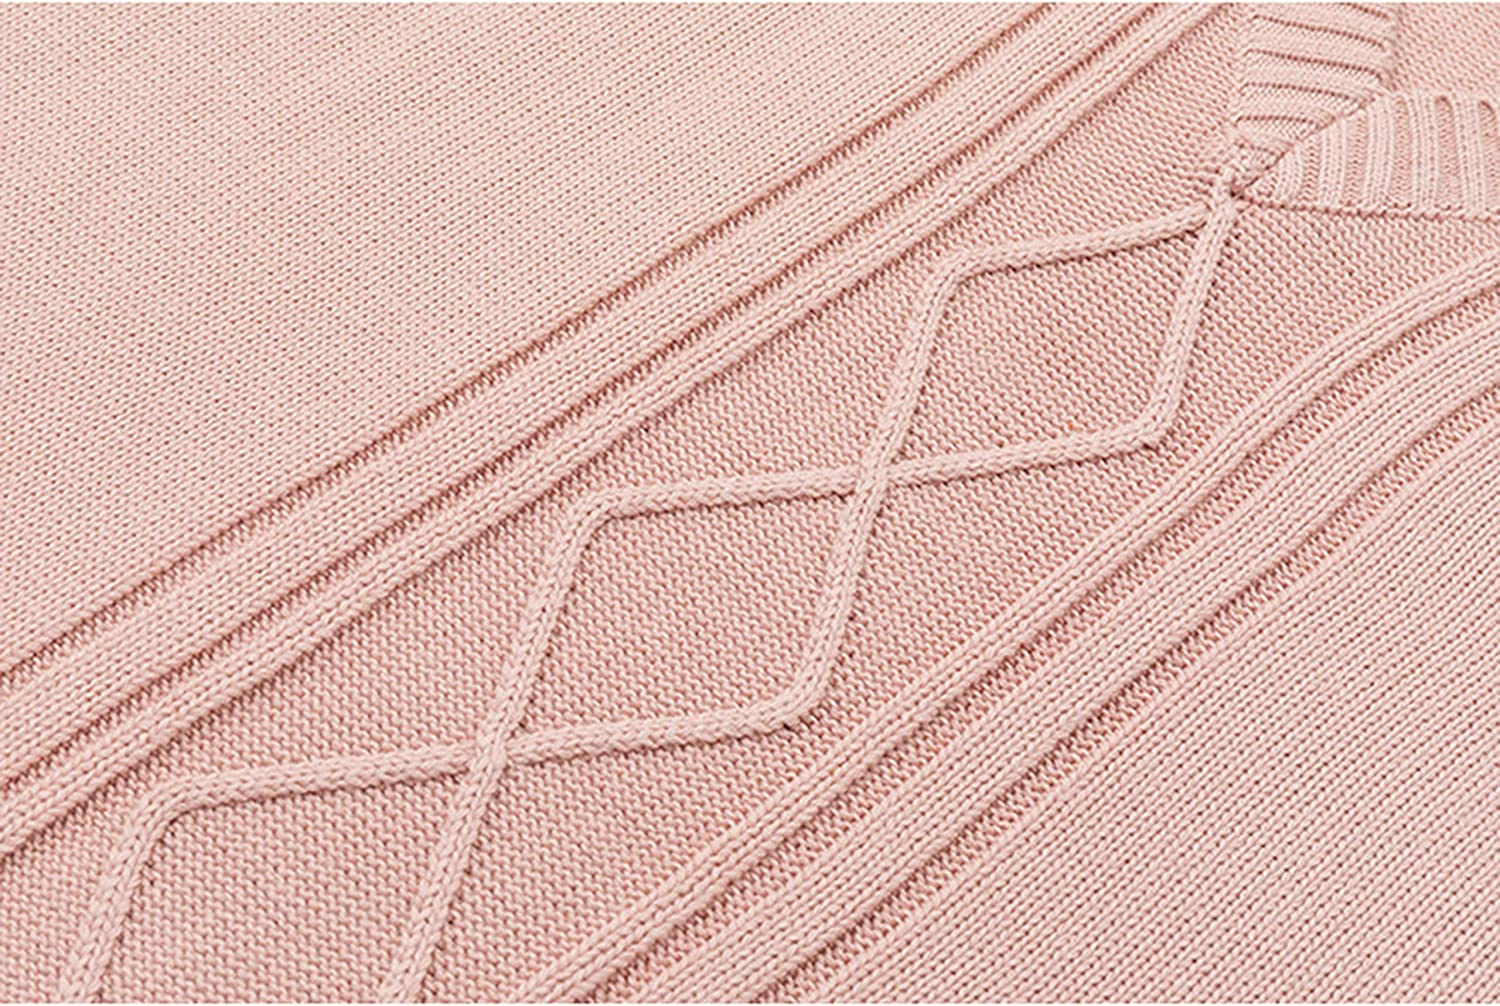 Uaneo Womens Cable Knit Cotton V Neck Sleeveless Pullover Sweater Vests(Pink-L)